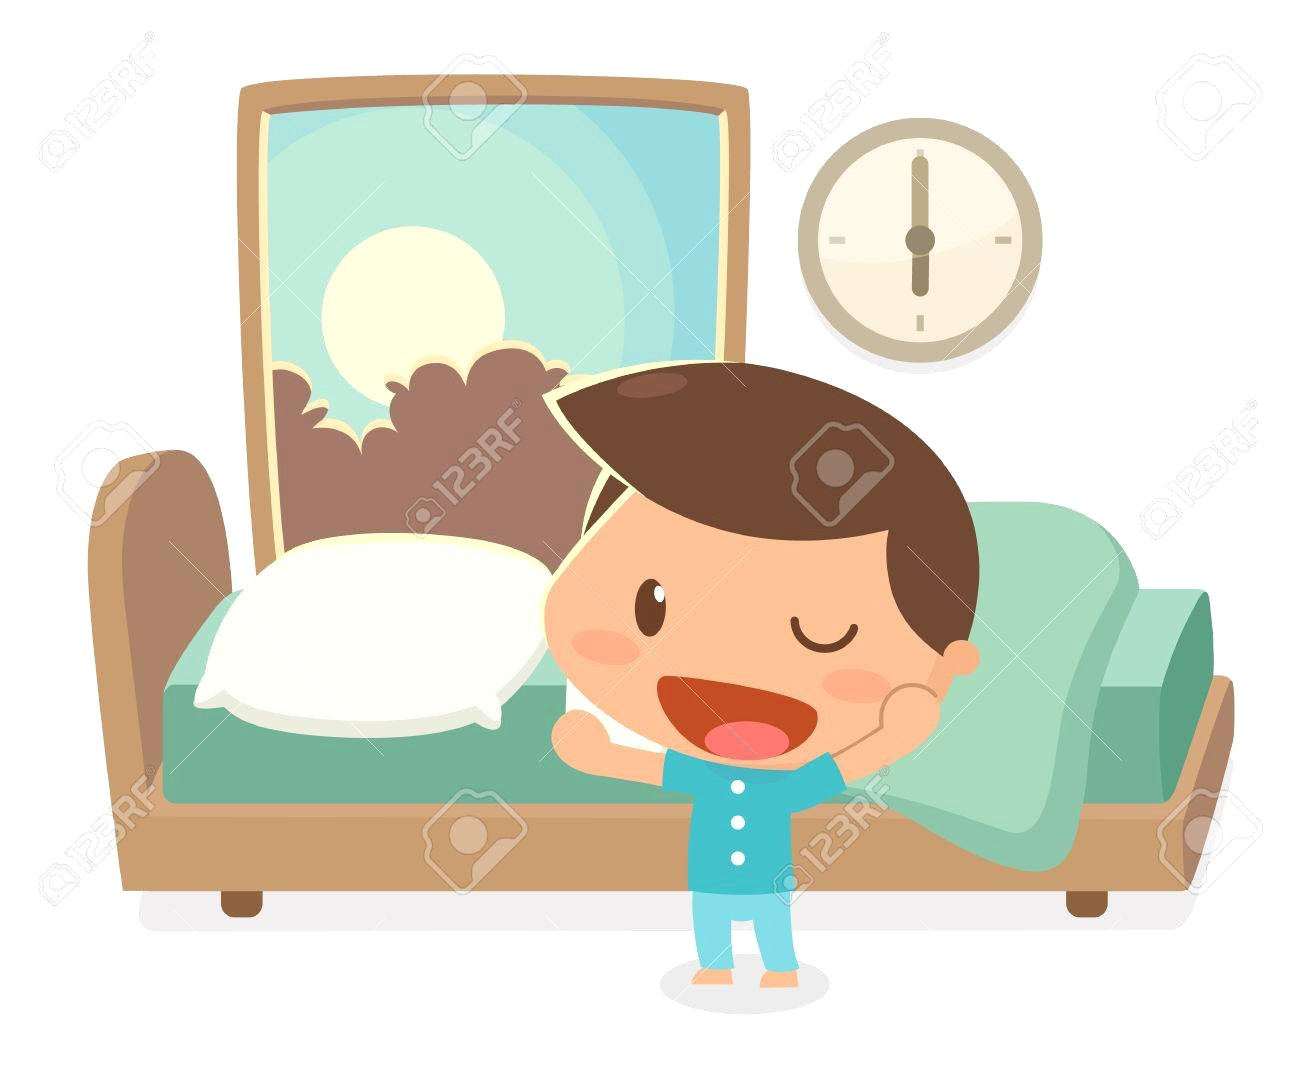 Clipart wake up 4 » Clipart Station.